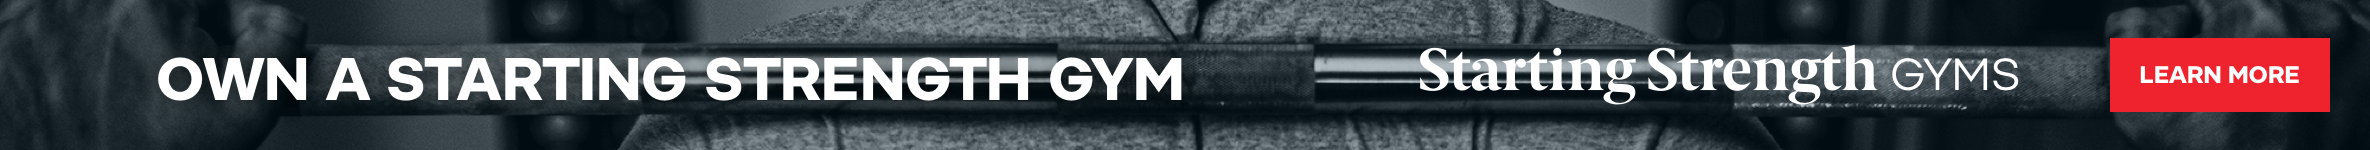 starting strength gym